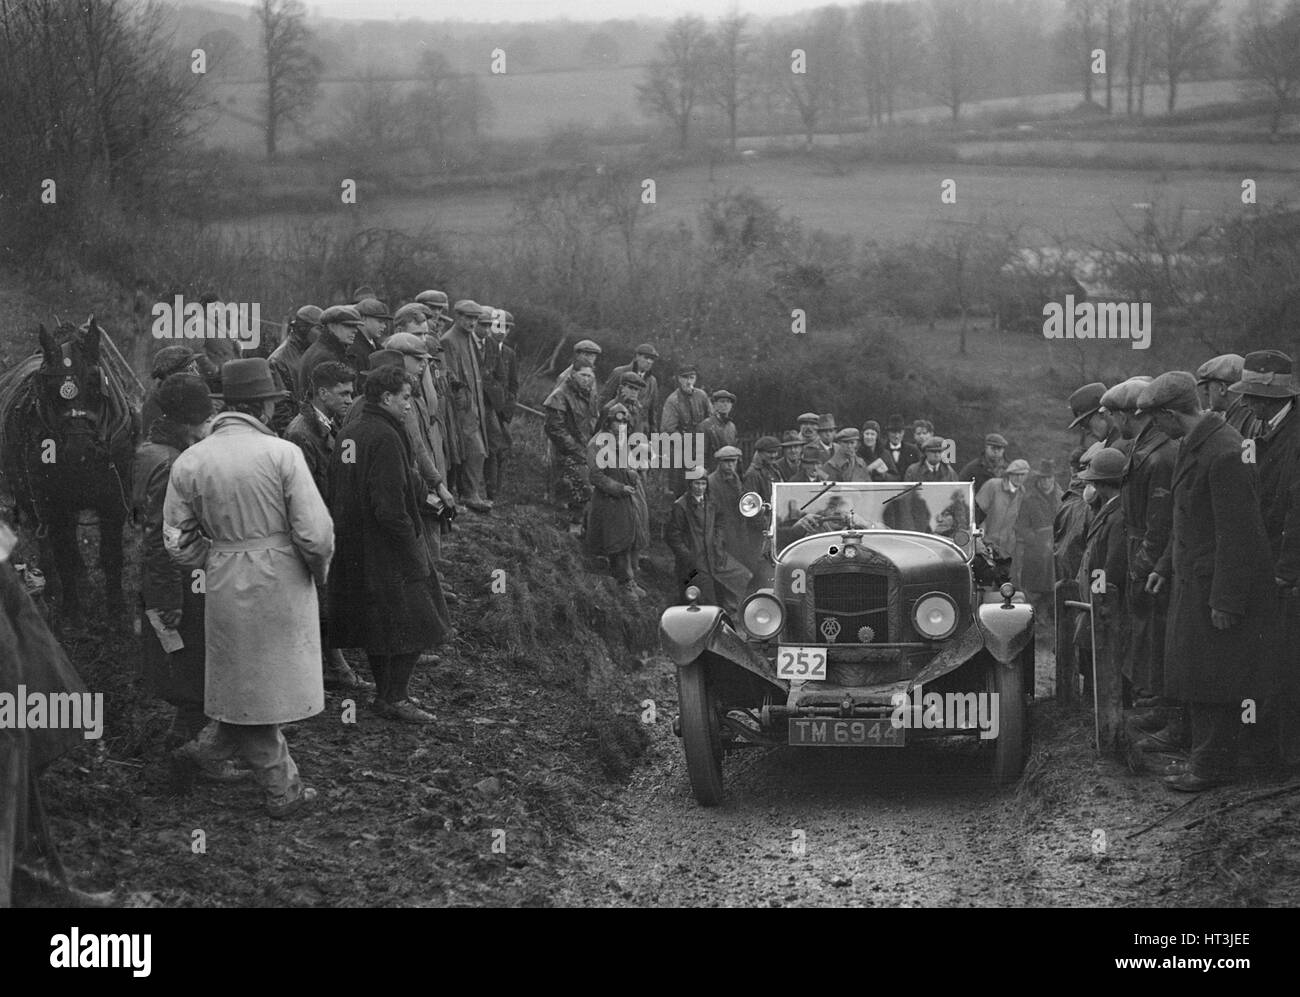 Crossley of HJ Stroud competing in the MCC Exeter Trial, Ibberton Hill, Dorset, 1930. Artist: Bill Brunell. Stock Photo